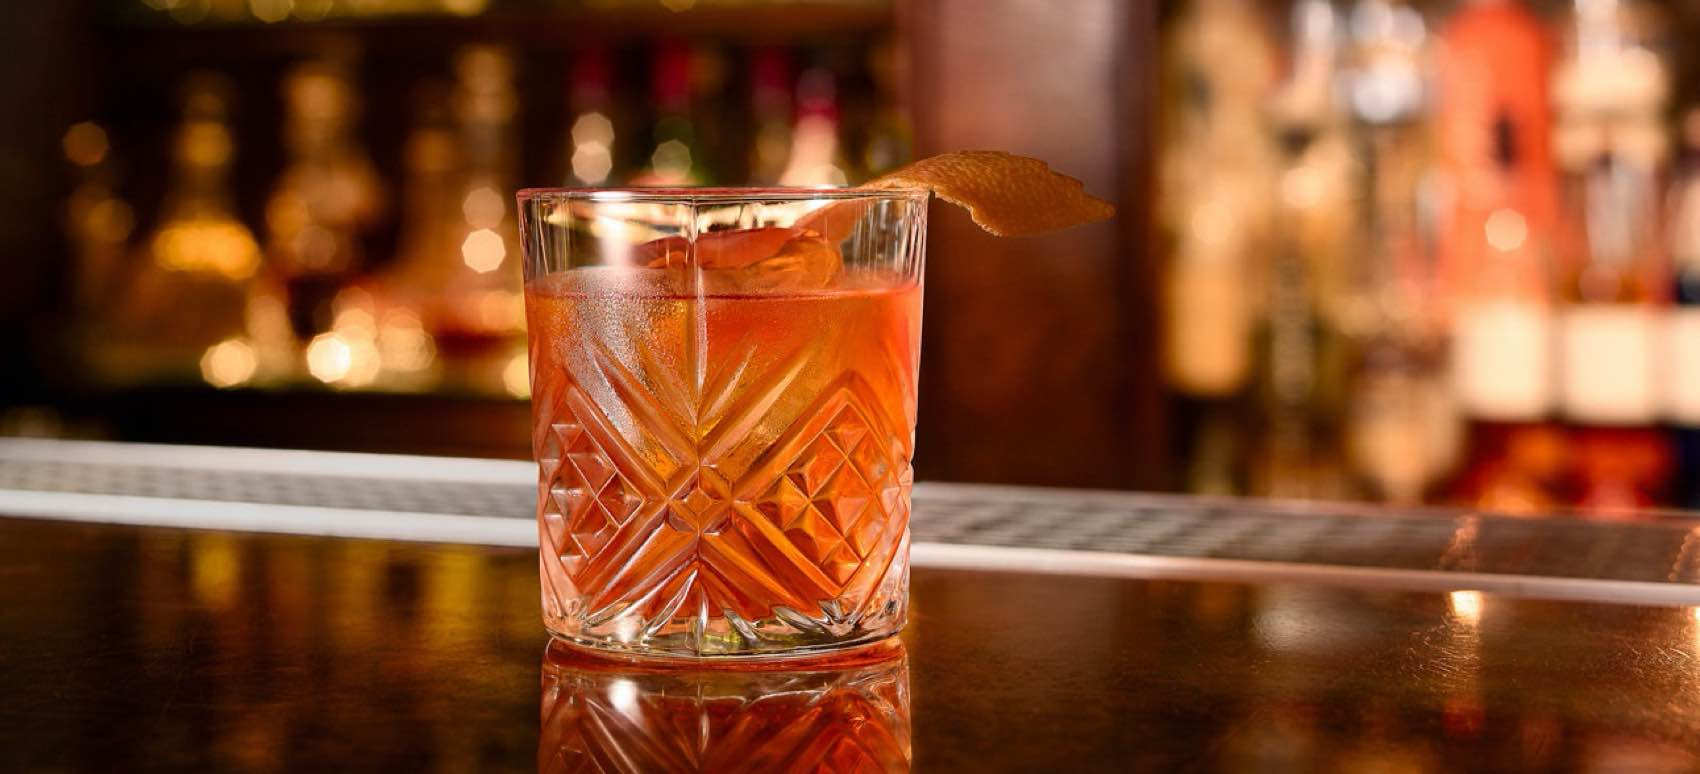 A star was born in 1919: Nigroni is a star in the cocktail universe